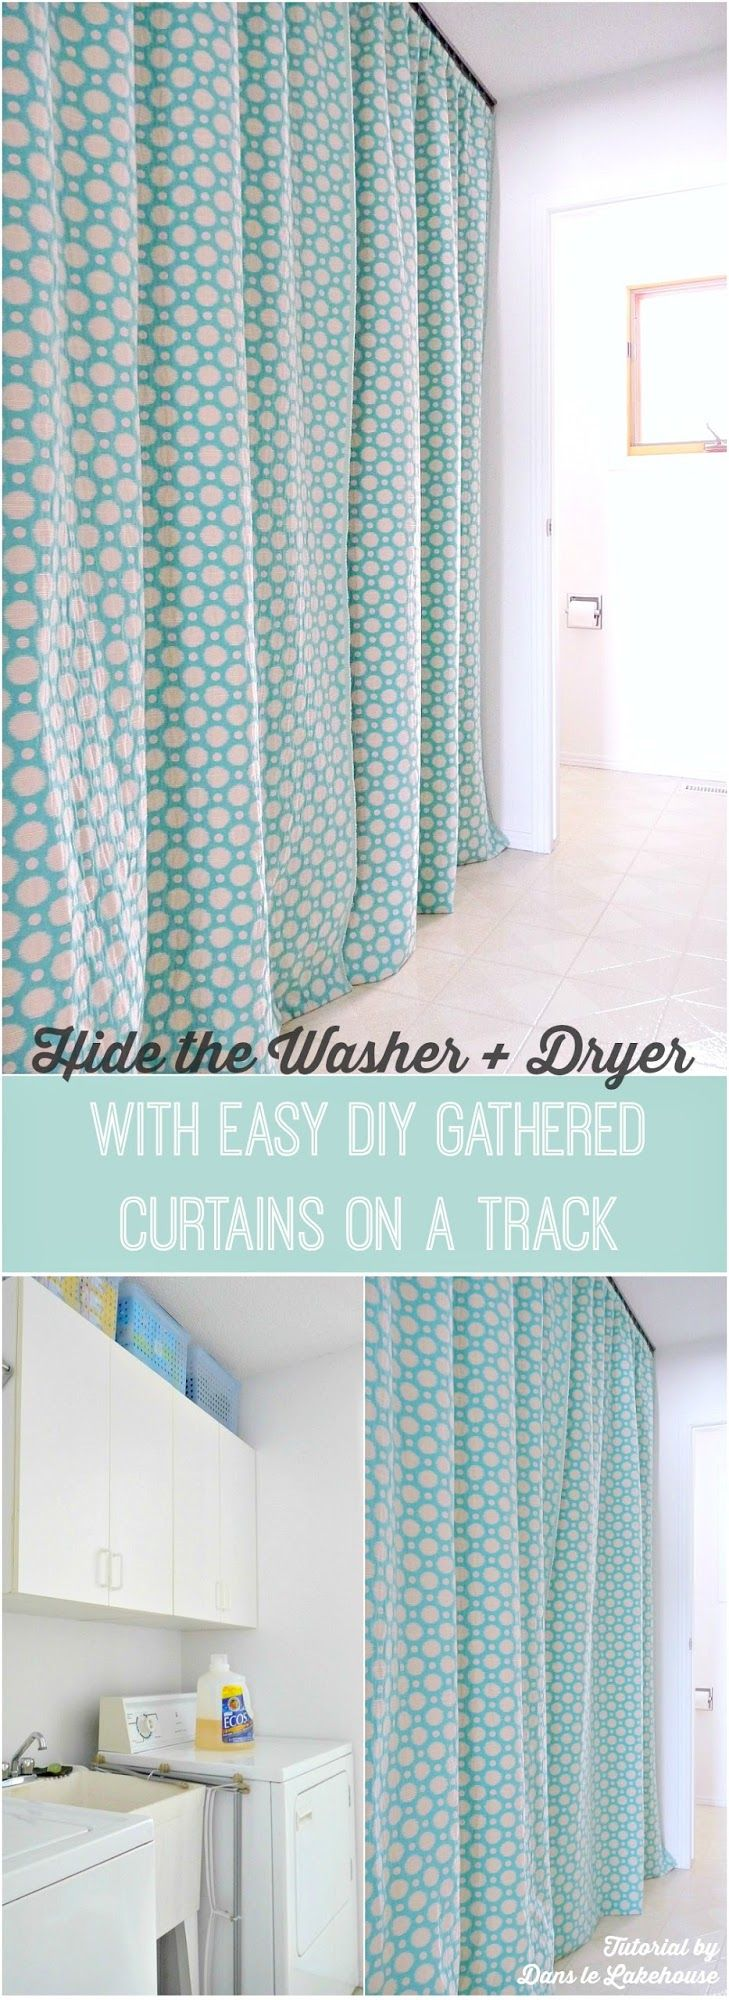 Hide A Washer And Dryer With Easy Diy Gathered Laundry